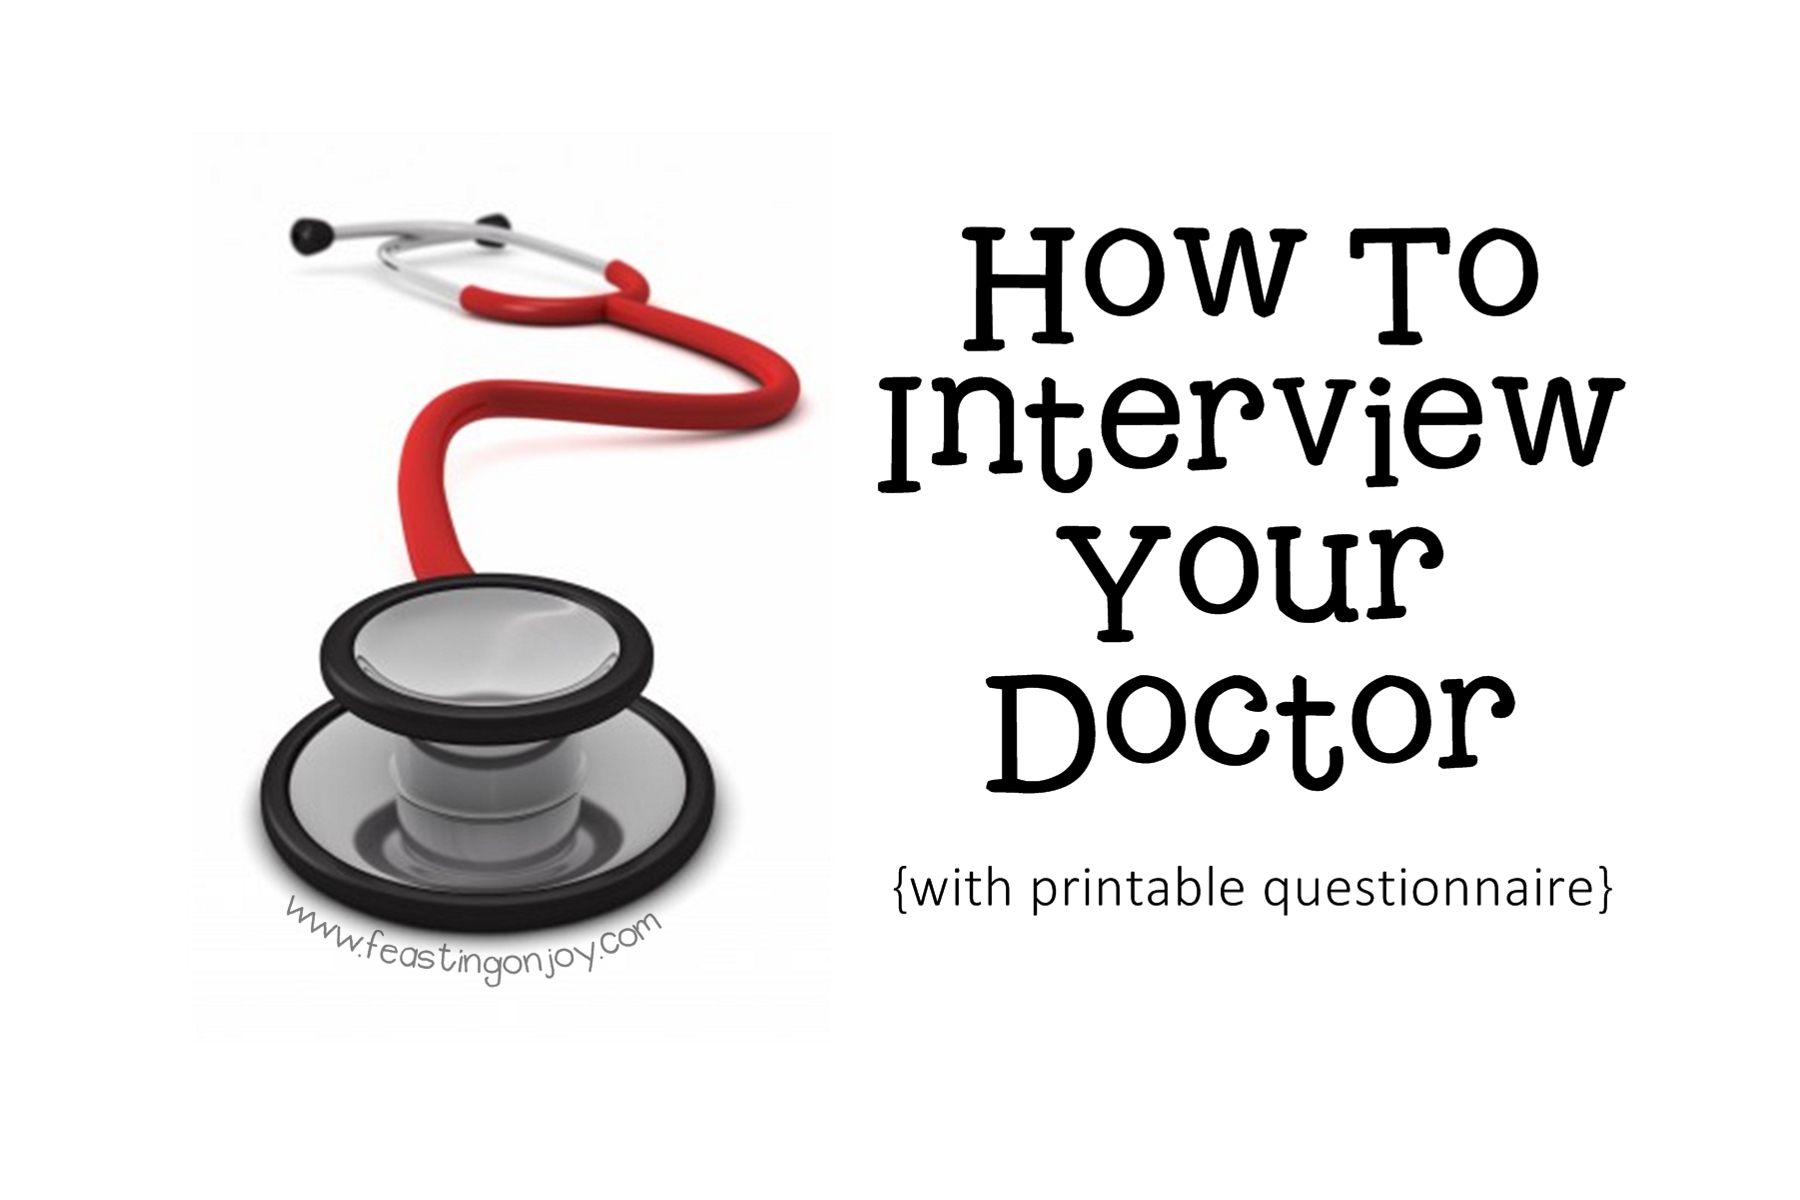 how to interview your doctor printable questionnaire how to interview your doctor printable questionnaire feasting on joy